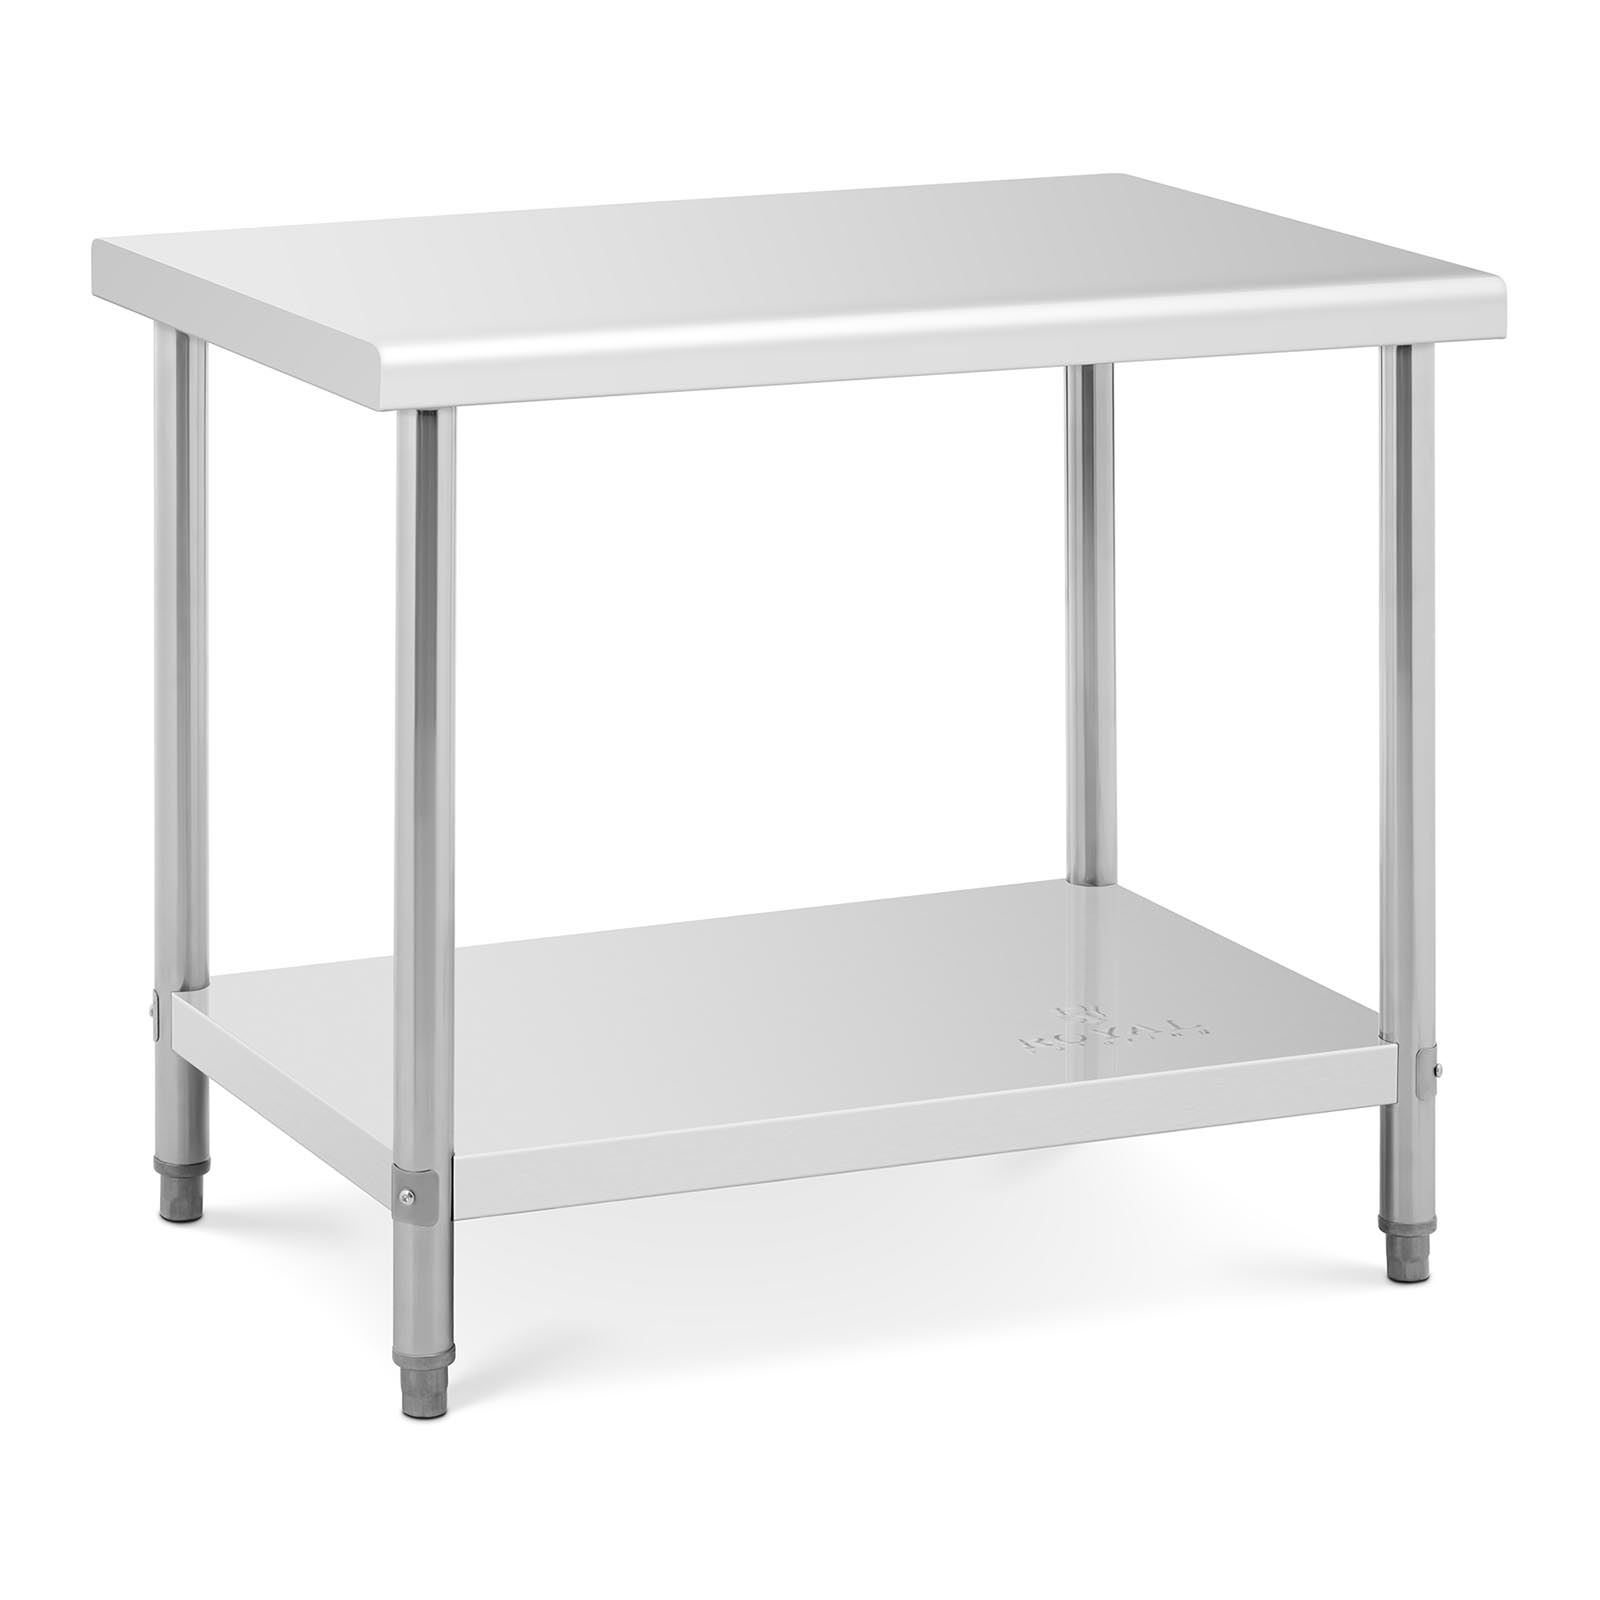 Kitchen Table With Food: Commercial Stainless Steel Catering Work Table Kitchen Food Work Bench Shelf